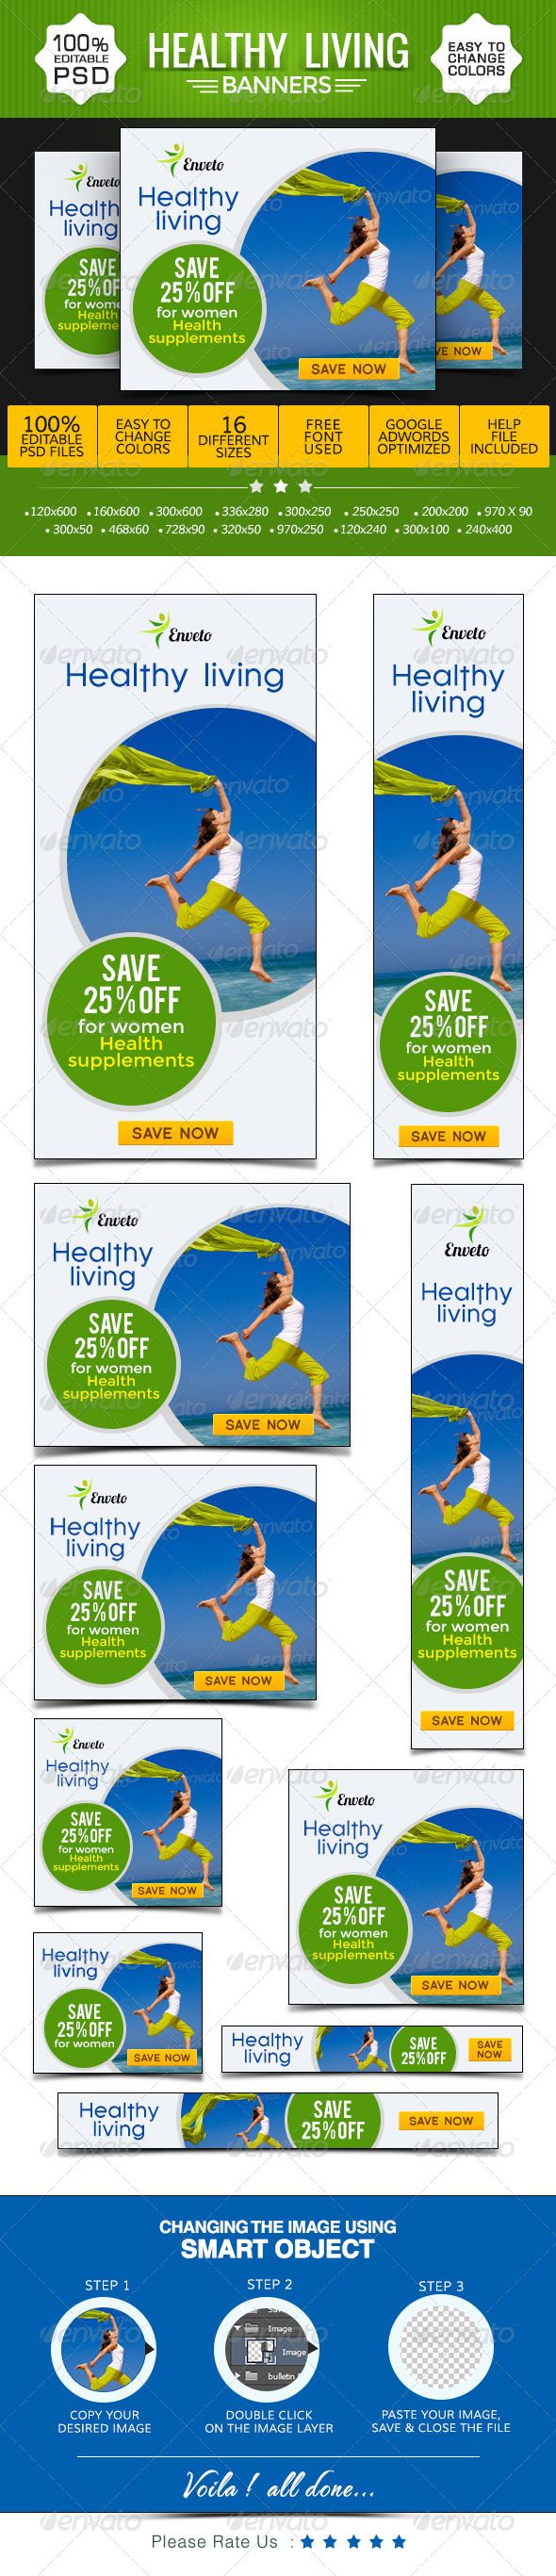 Health & Life Style Banners Template PSD | Buy and Download: http://graphicriver.net/item/health-life-style-banners/8621624?WT.ac=category_thumb&WT.z_author=BannerDesignCo&ref=ksioks